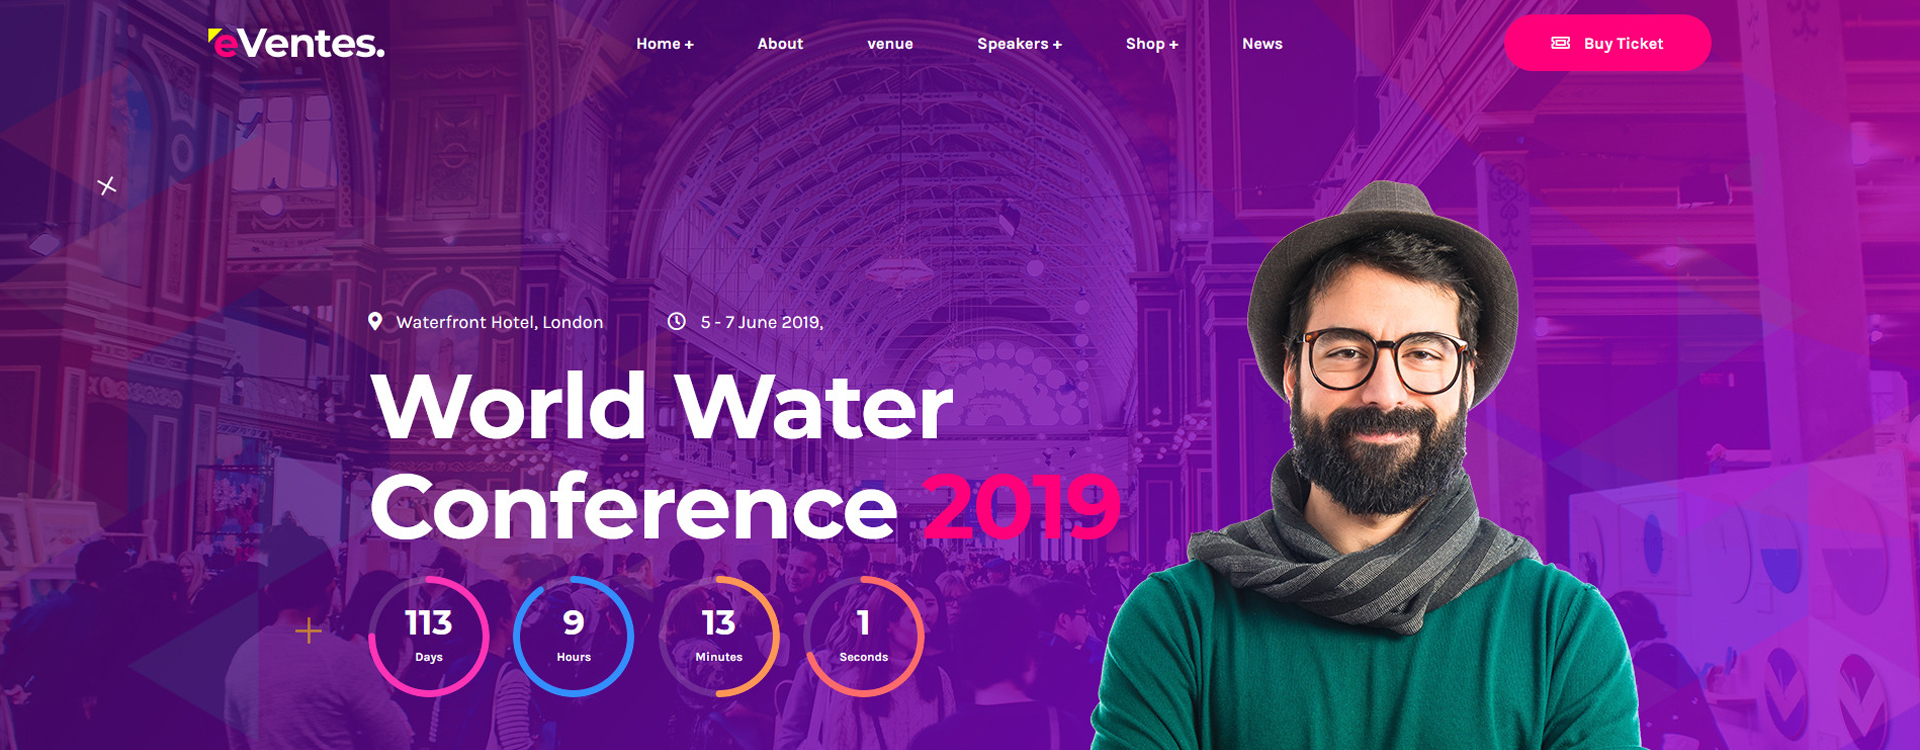 Eventes - Event Conference HTML5 Website Template